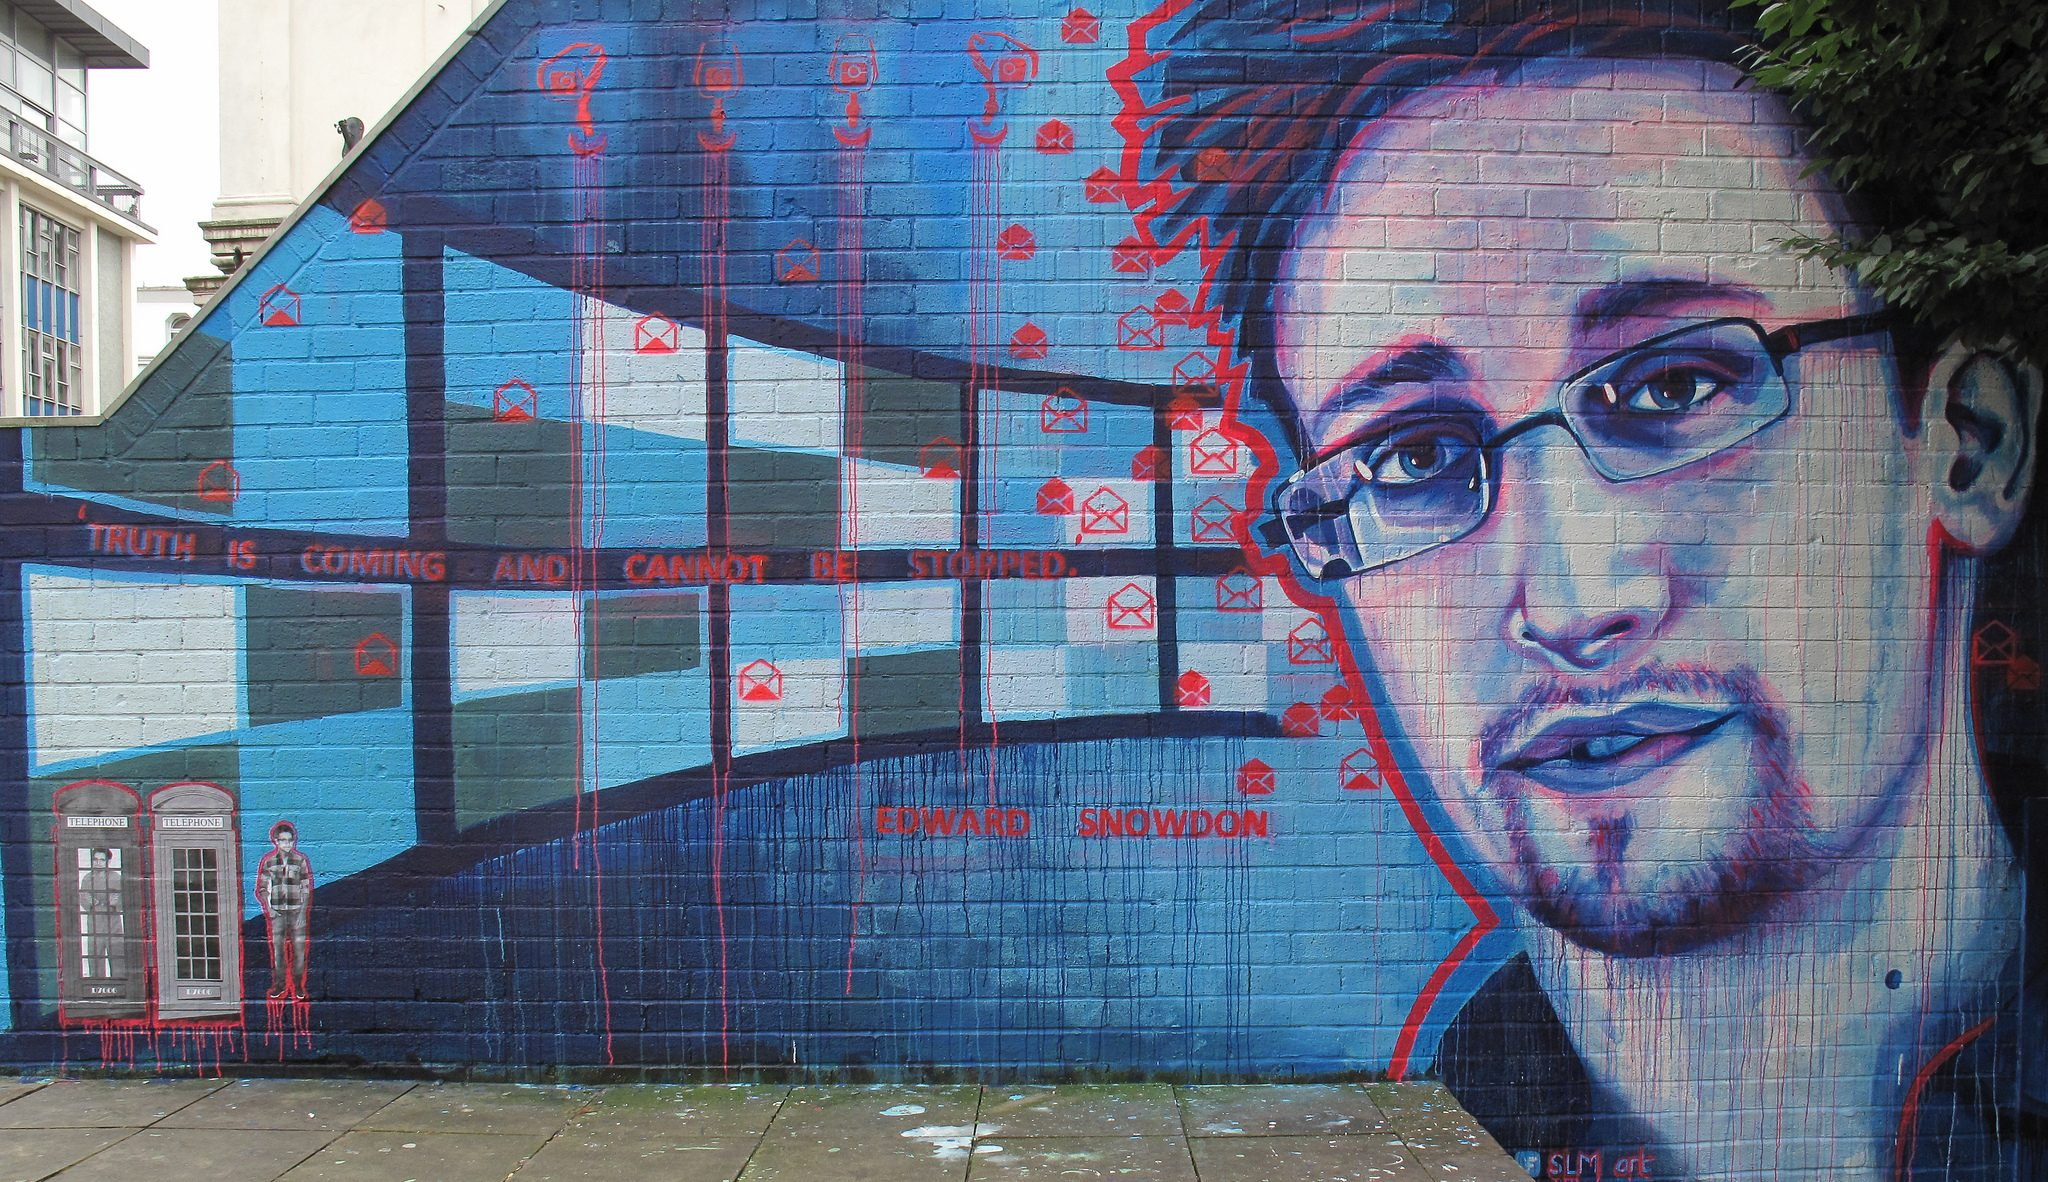 Edward Snowden grafitti